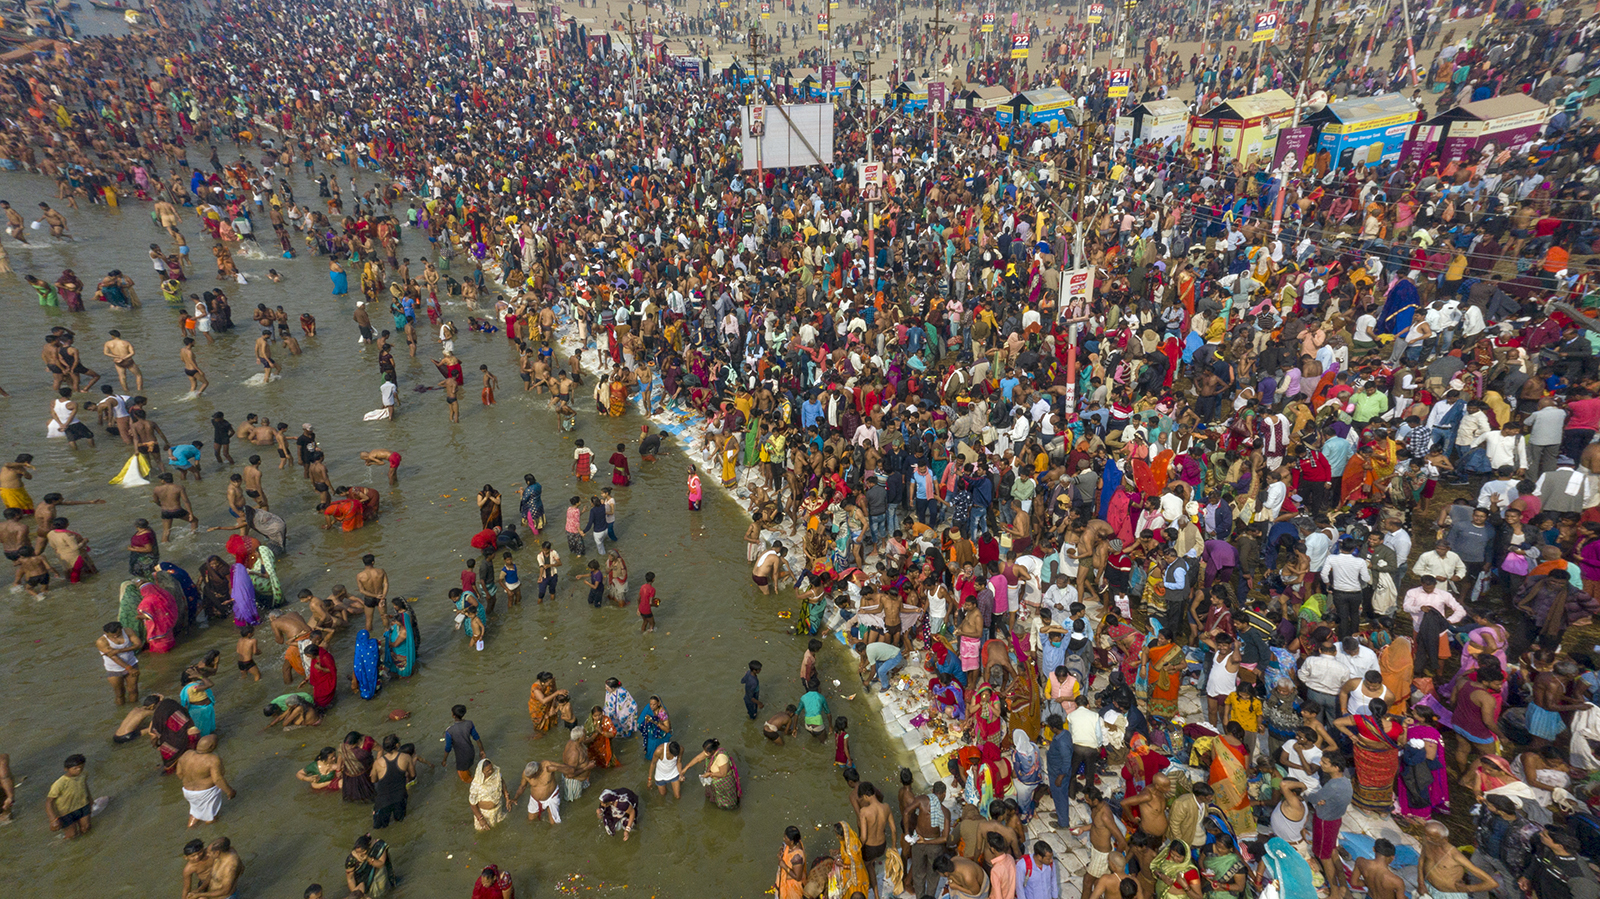 """Thousands of Hindu devotees bathe at the Sangam, the confluence of the rivers Ganges and the Yamuna, during the annual month-long Hindu religious fair """"Magh Mela"""" in Prayagraj, India, on Thursday, Feb. 11, 2021. (AP Photo/Rajesh Kumar Singh)"""